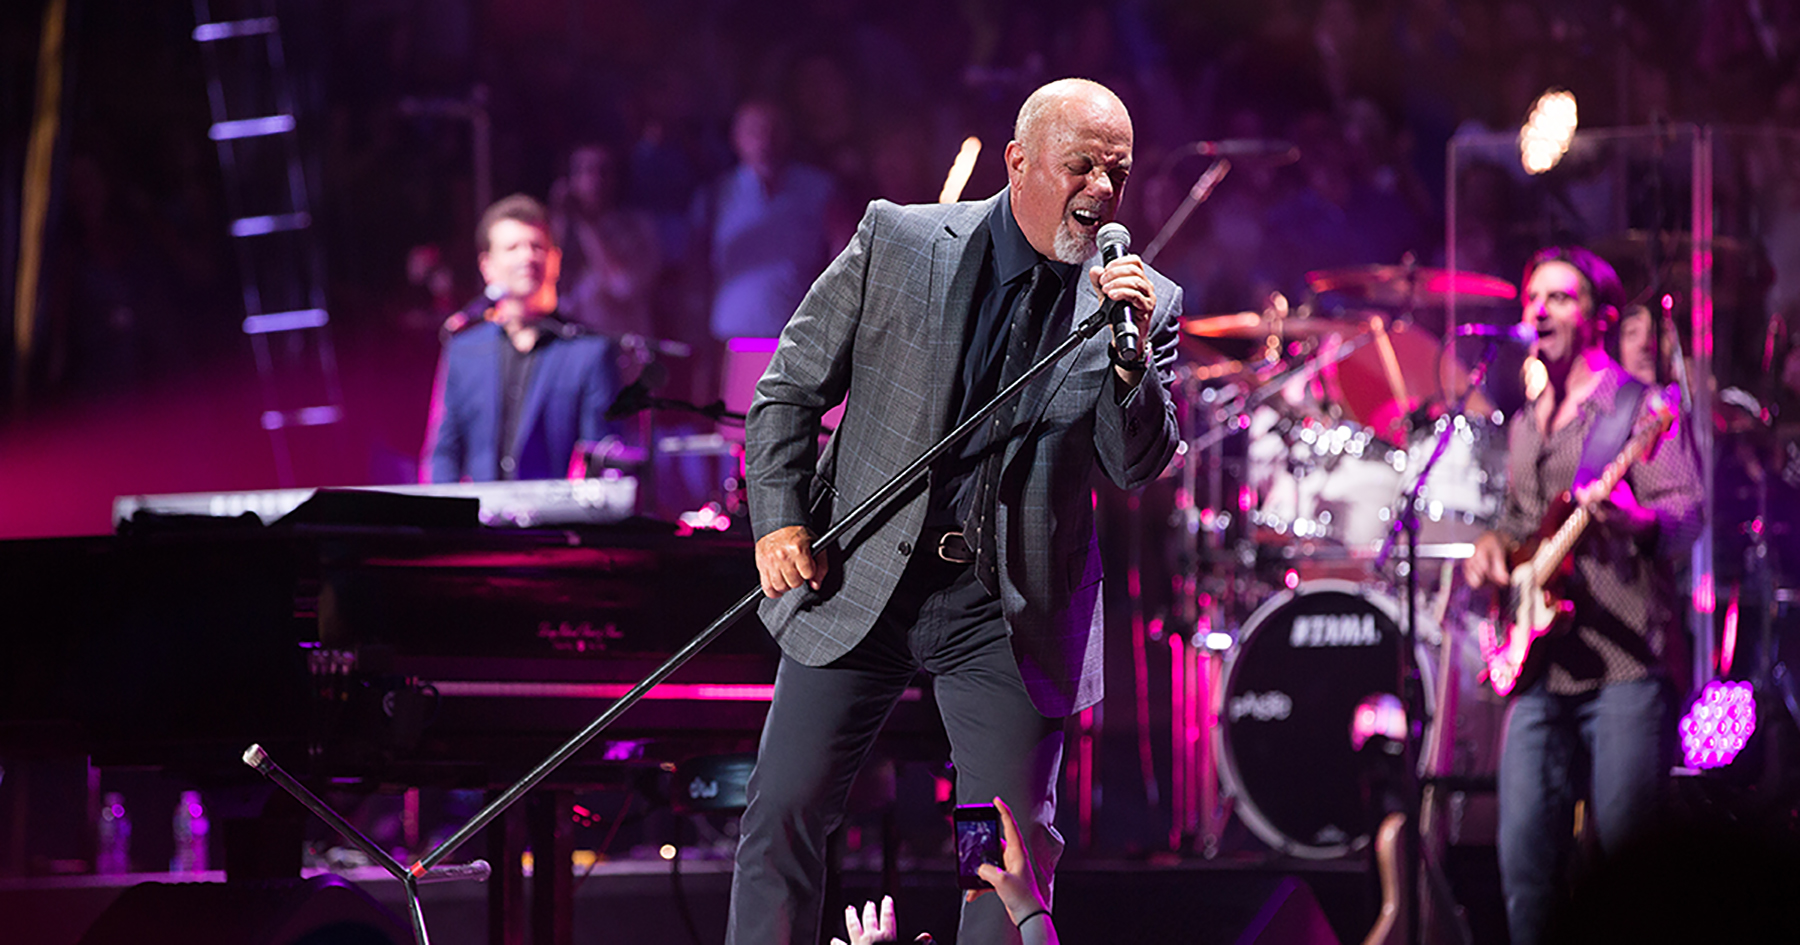 Billy Joel at MSG – December 20, 2021